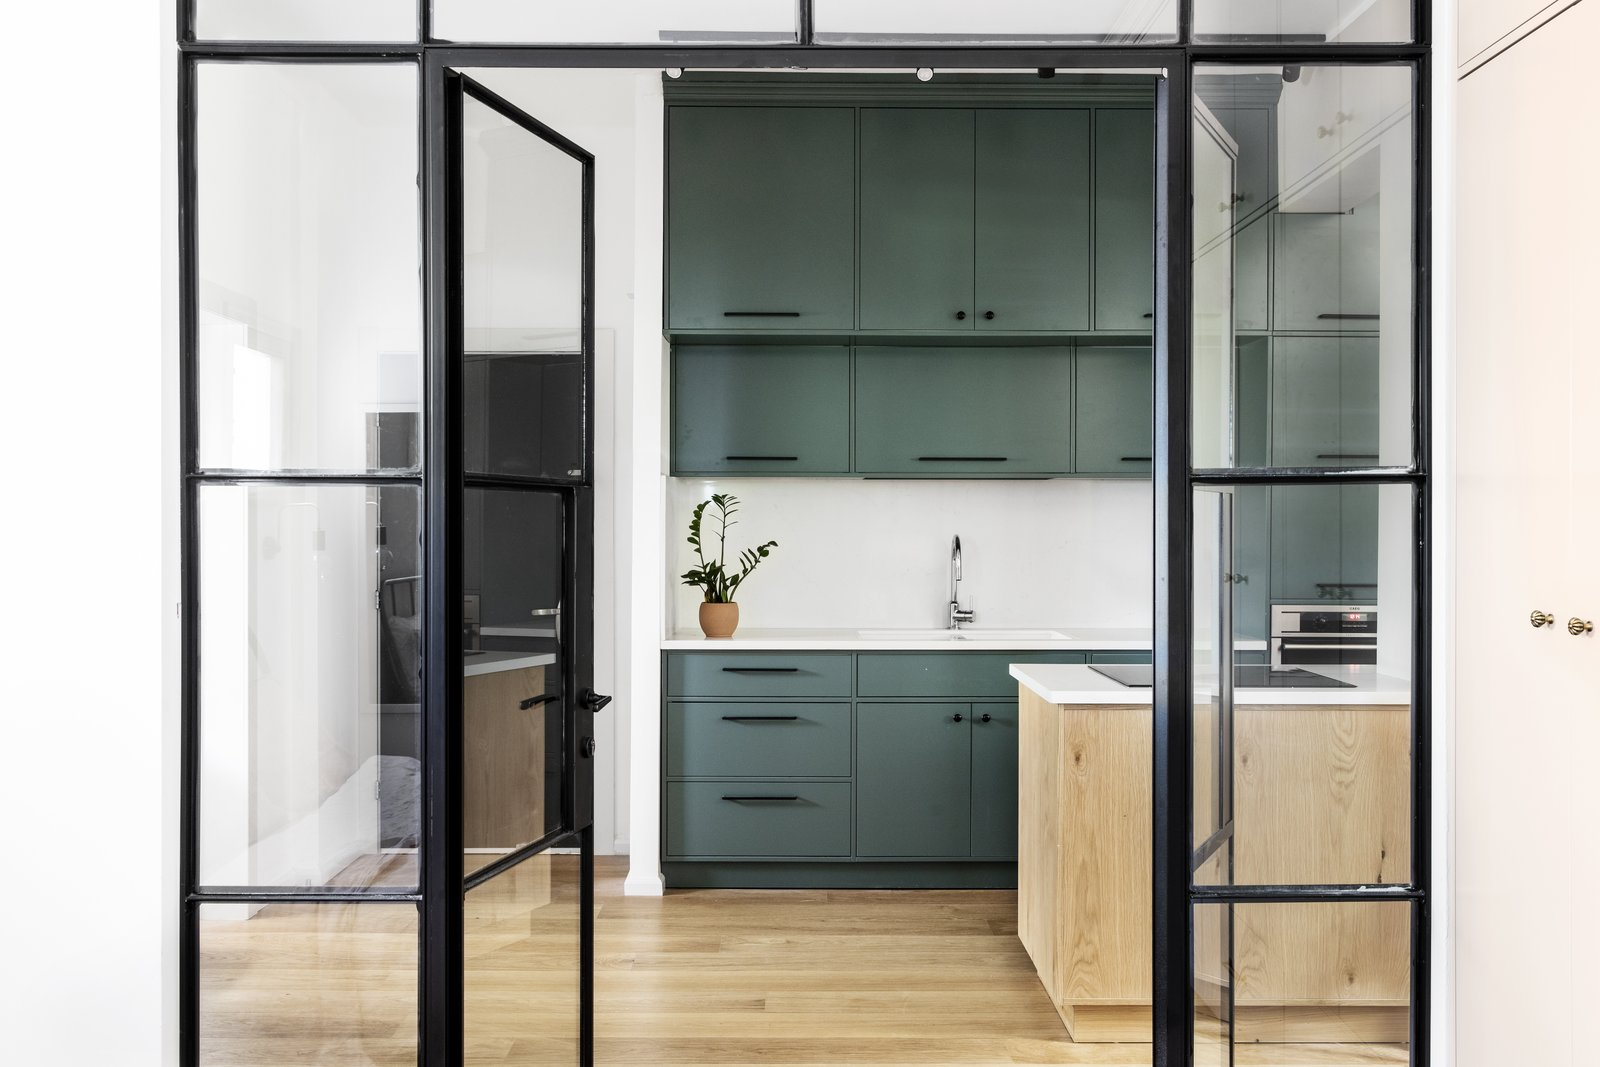 Kitchen, Medium Hardwood Floor, Cooktops, Wall Oven, Wood Cabinet, and Colorful Cabinet From the bedroom, glass and iron doors reveal the open kitchen space. Although unconventional for privacy, the glass doors enhance the feeling of an open plan.   Home Ideas